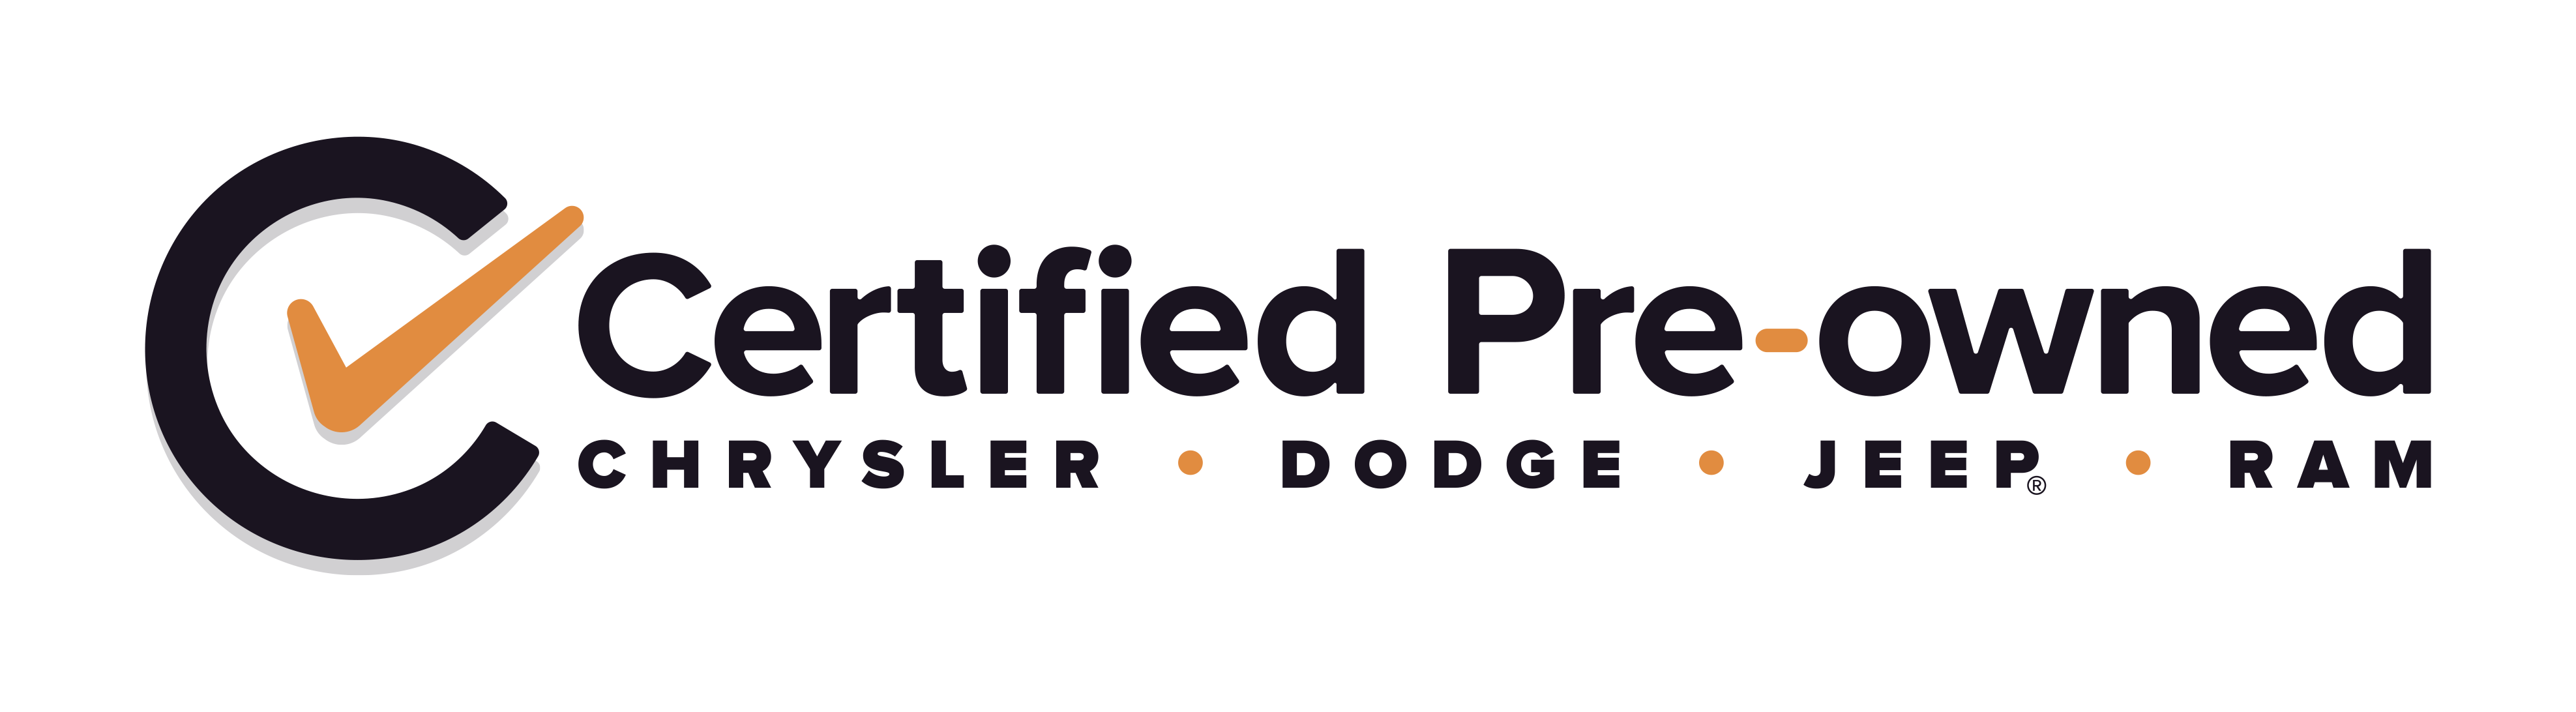 Jeep Certified Pre Owned >> Chrysler Dodge Jeep Ram Certified Pre Owned